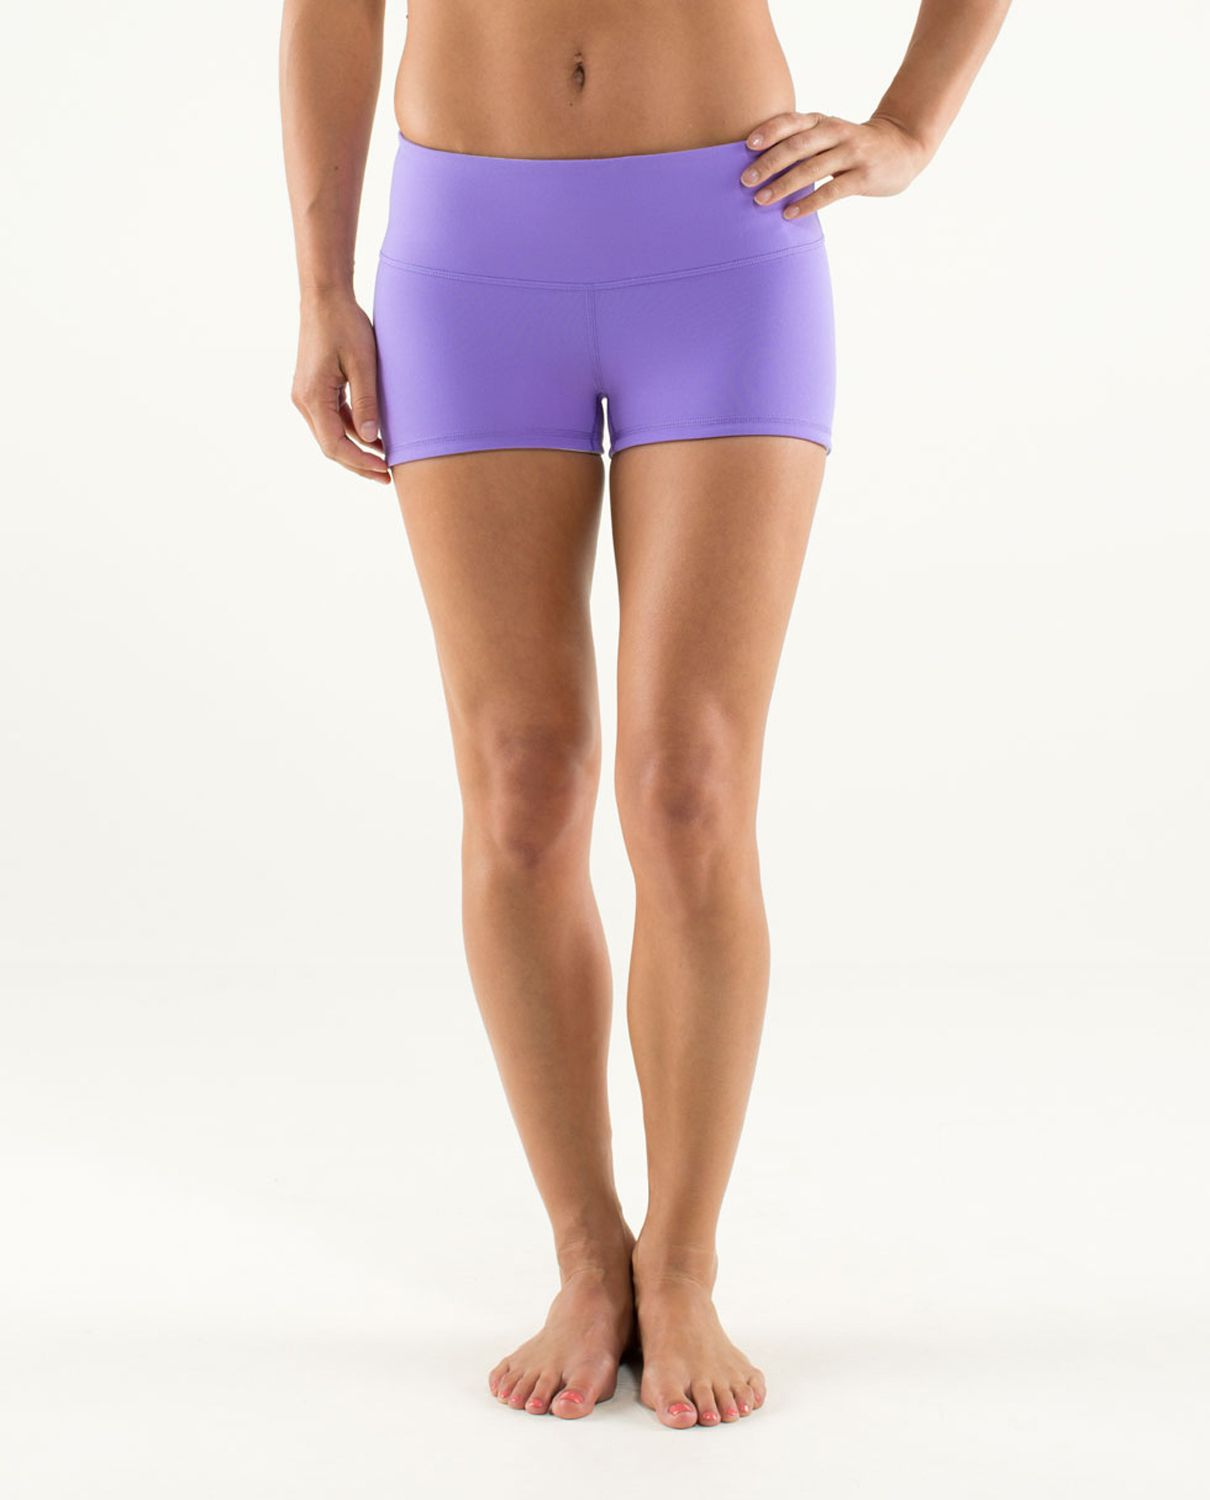 a96a7c18e8d Yoga Shorts for Women by Length